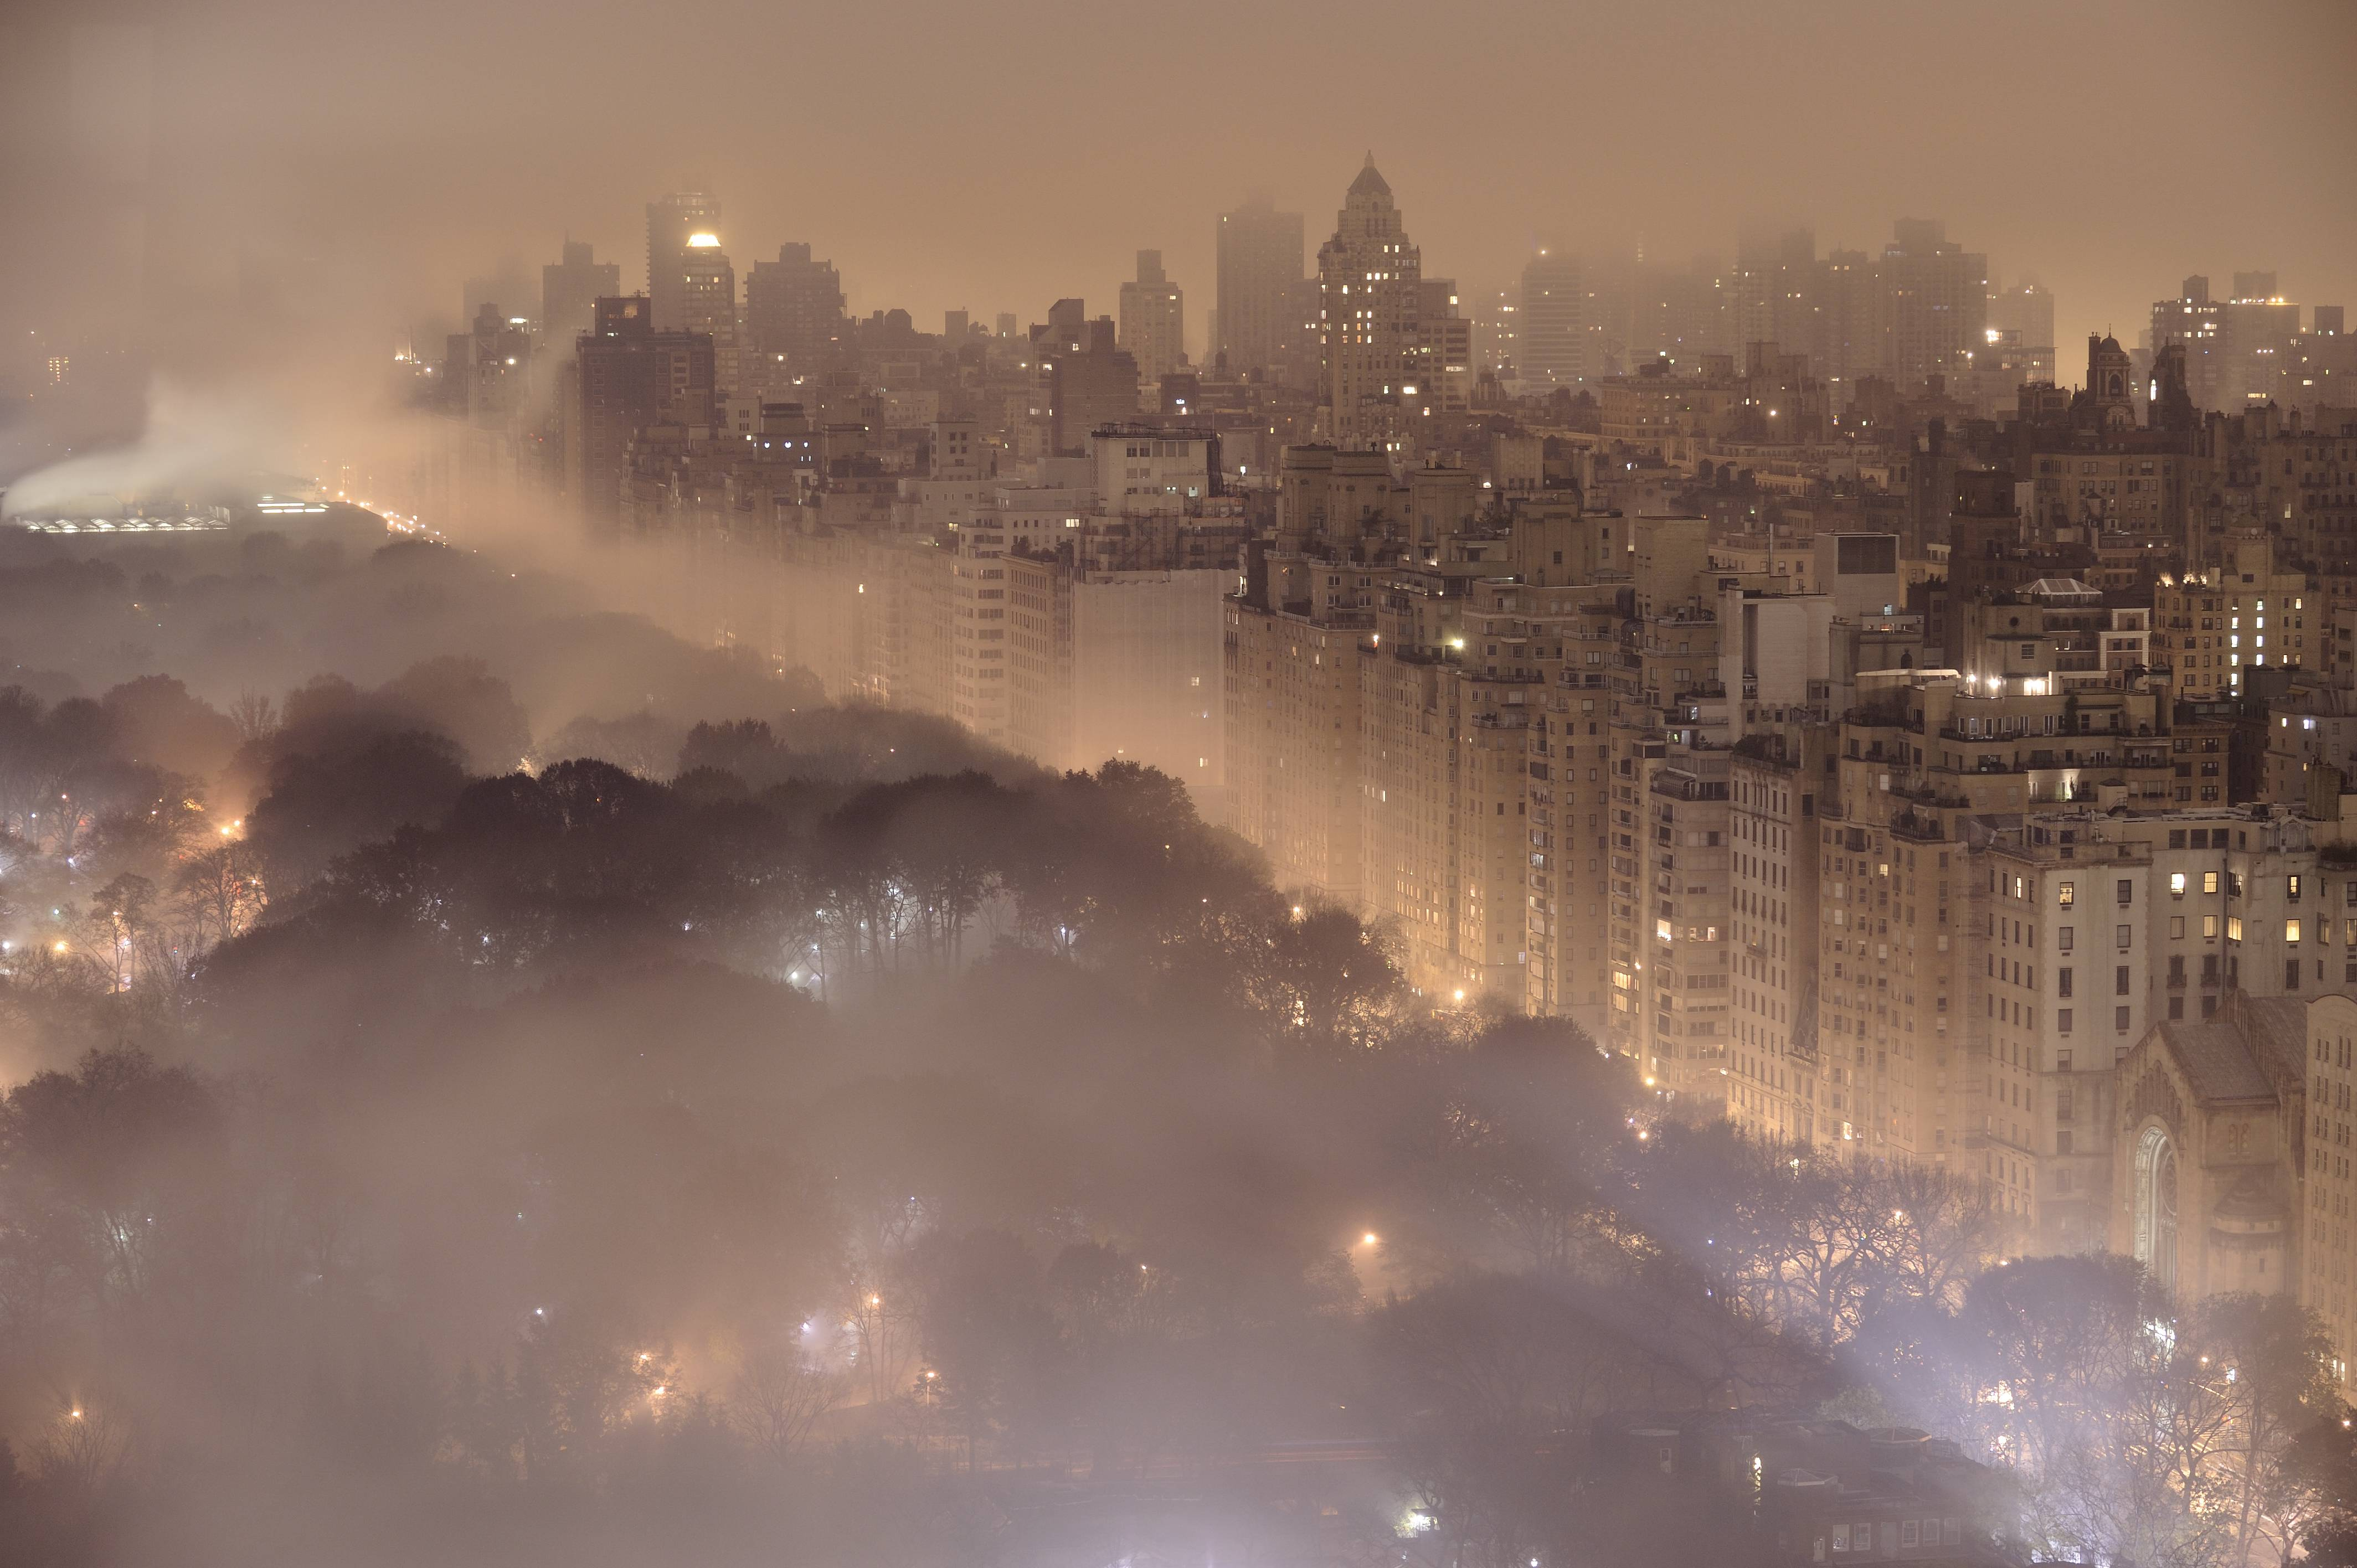 1000+ images about NYC on Pinterest.